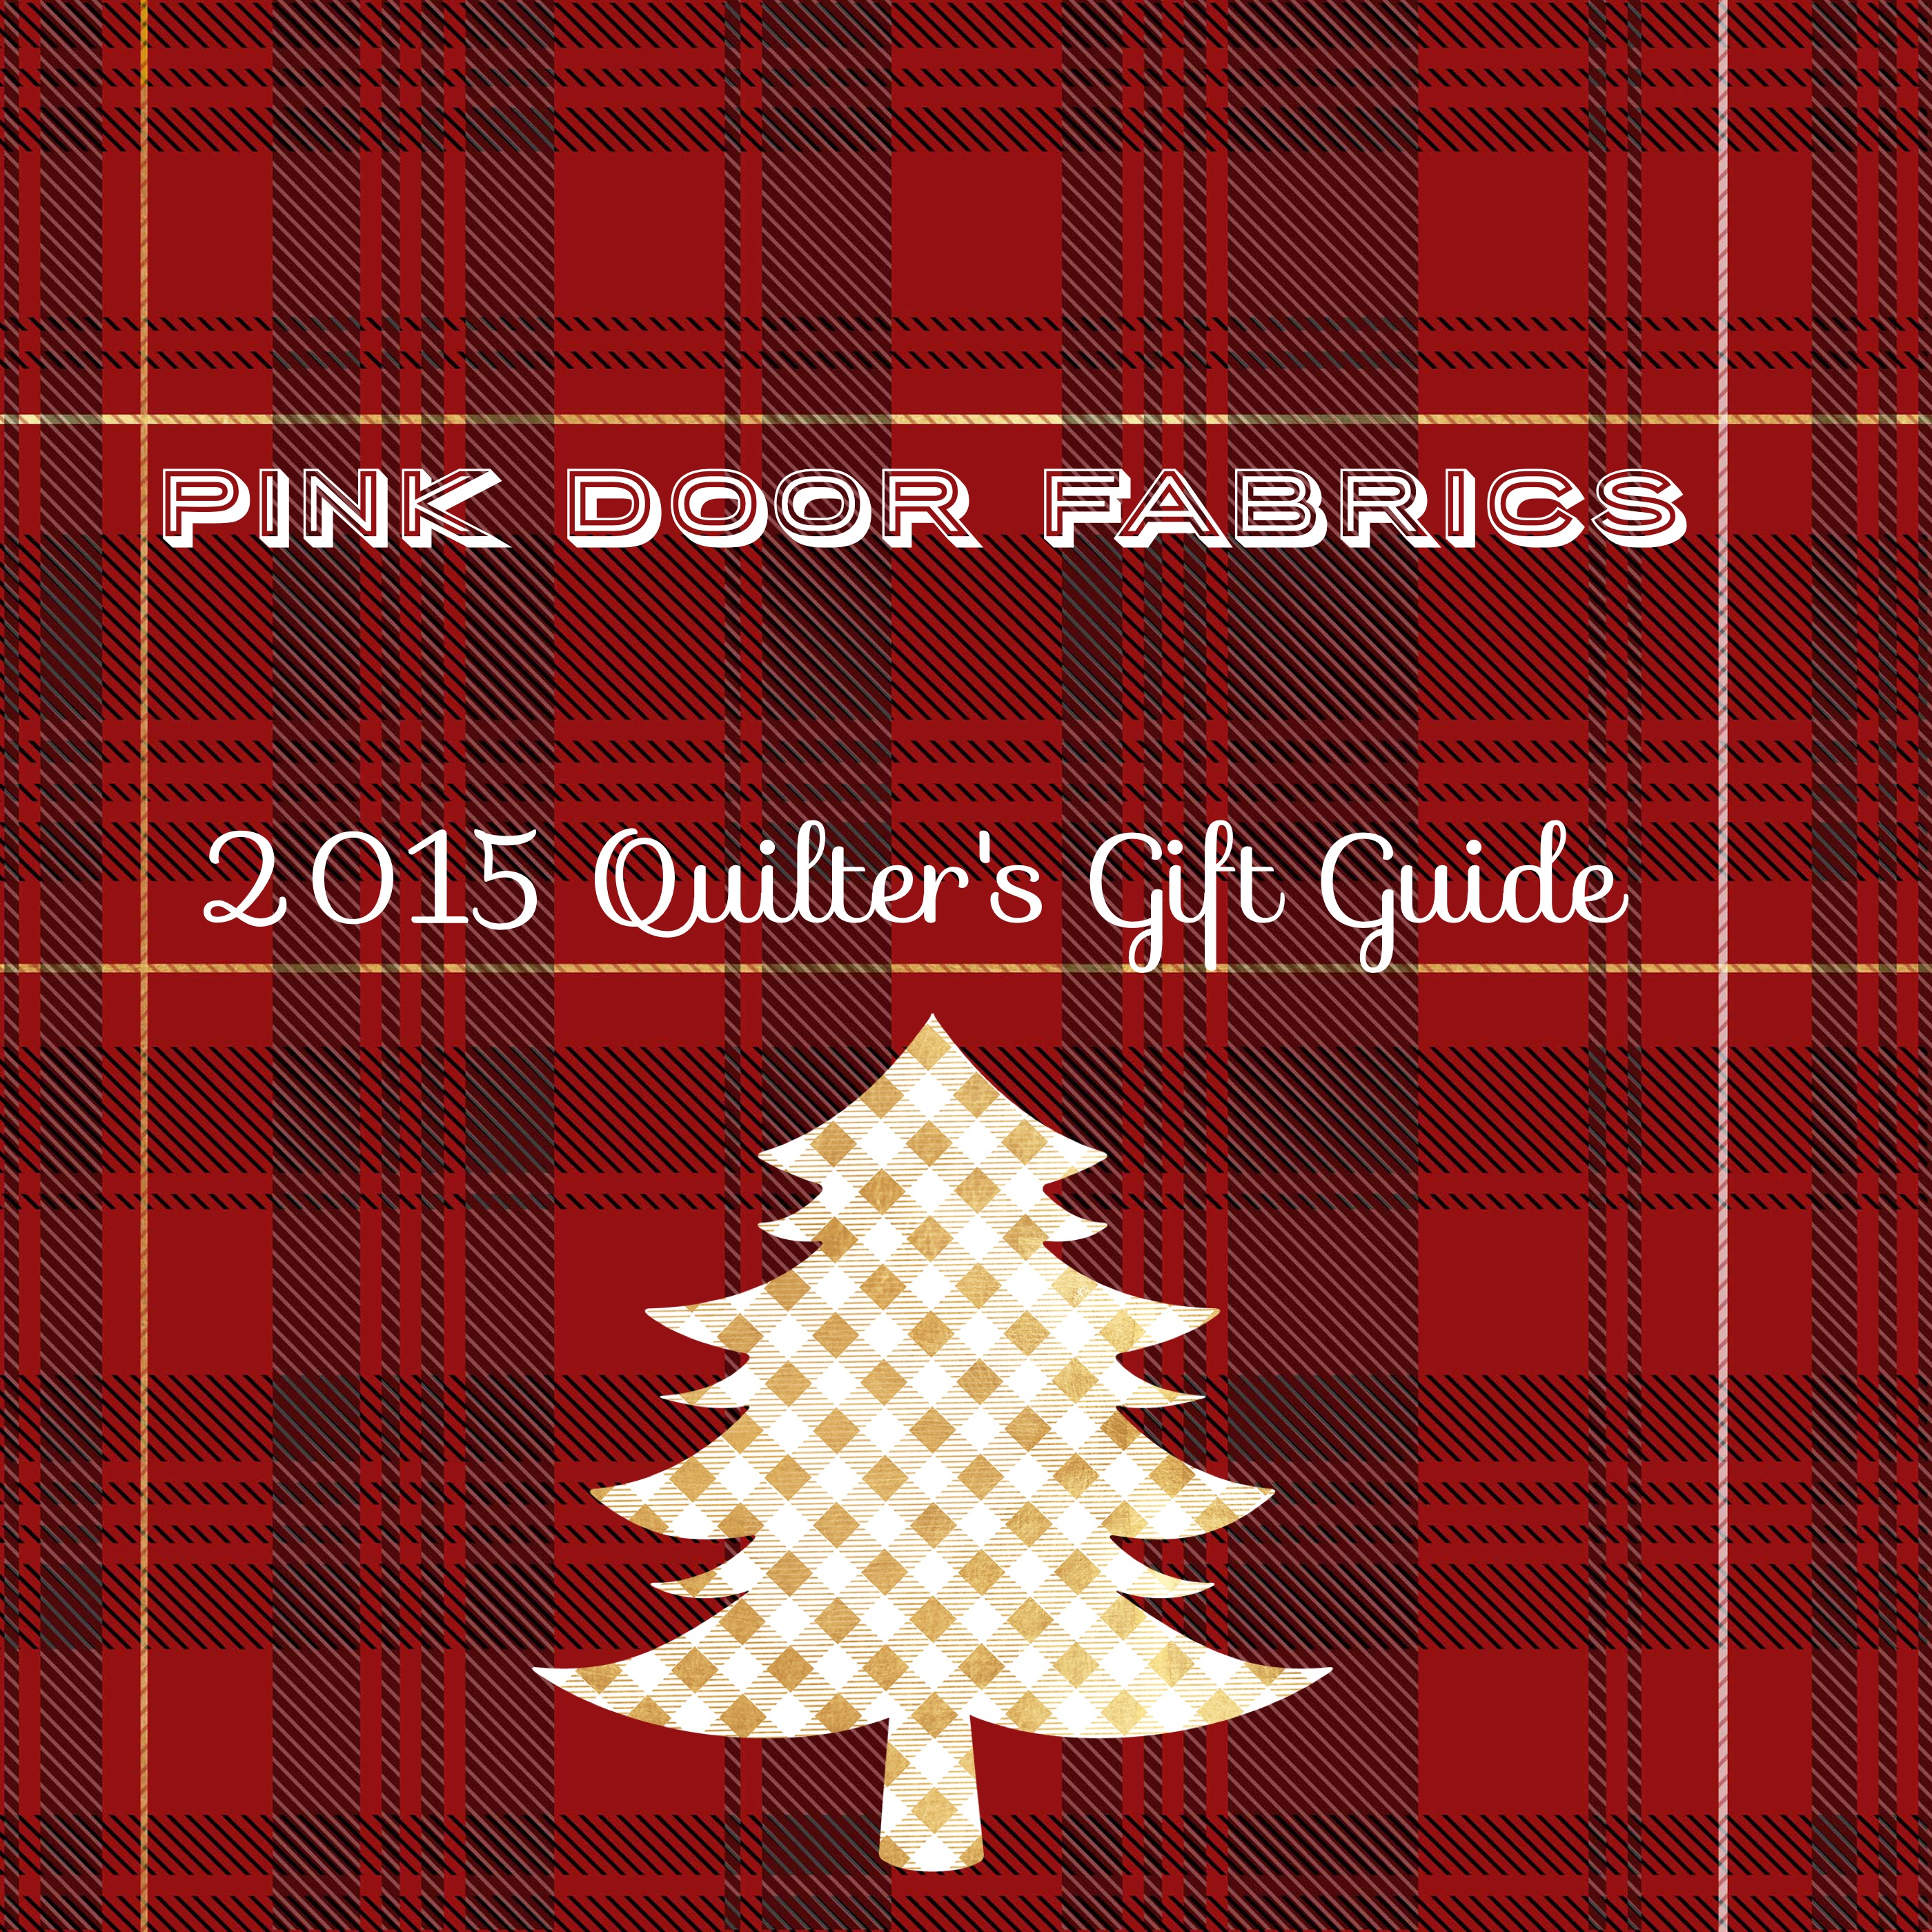 2015 Quilter's Gift Guide